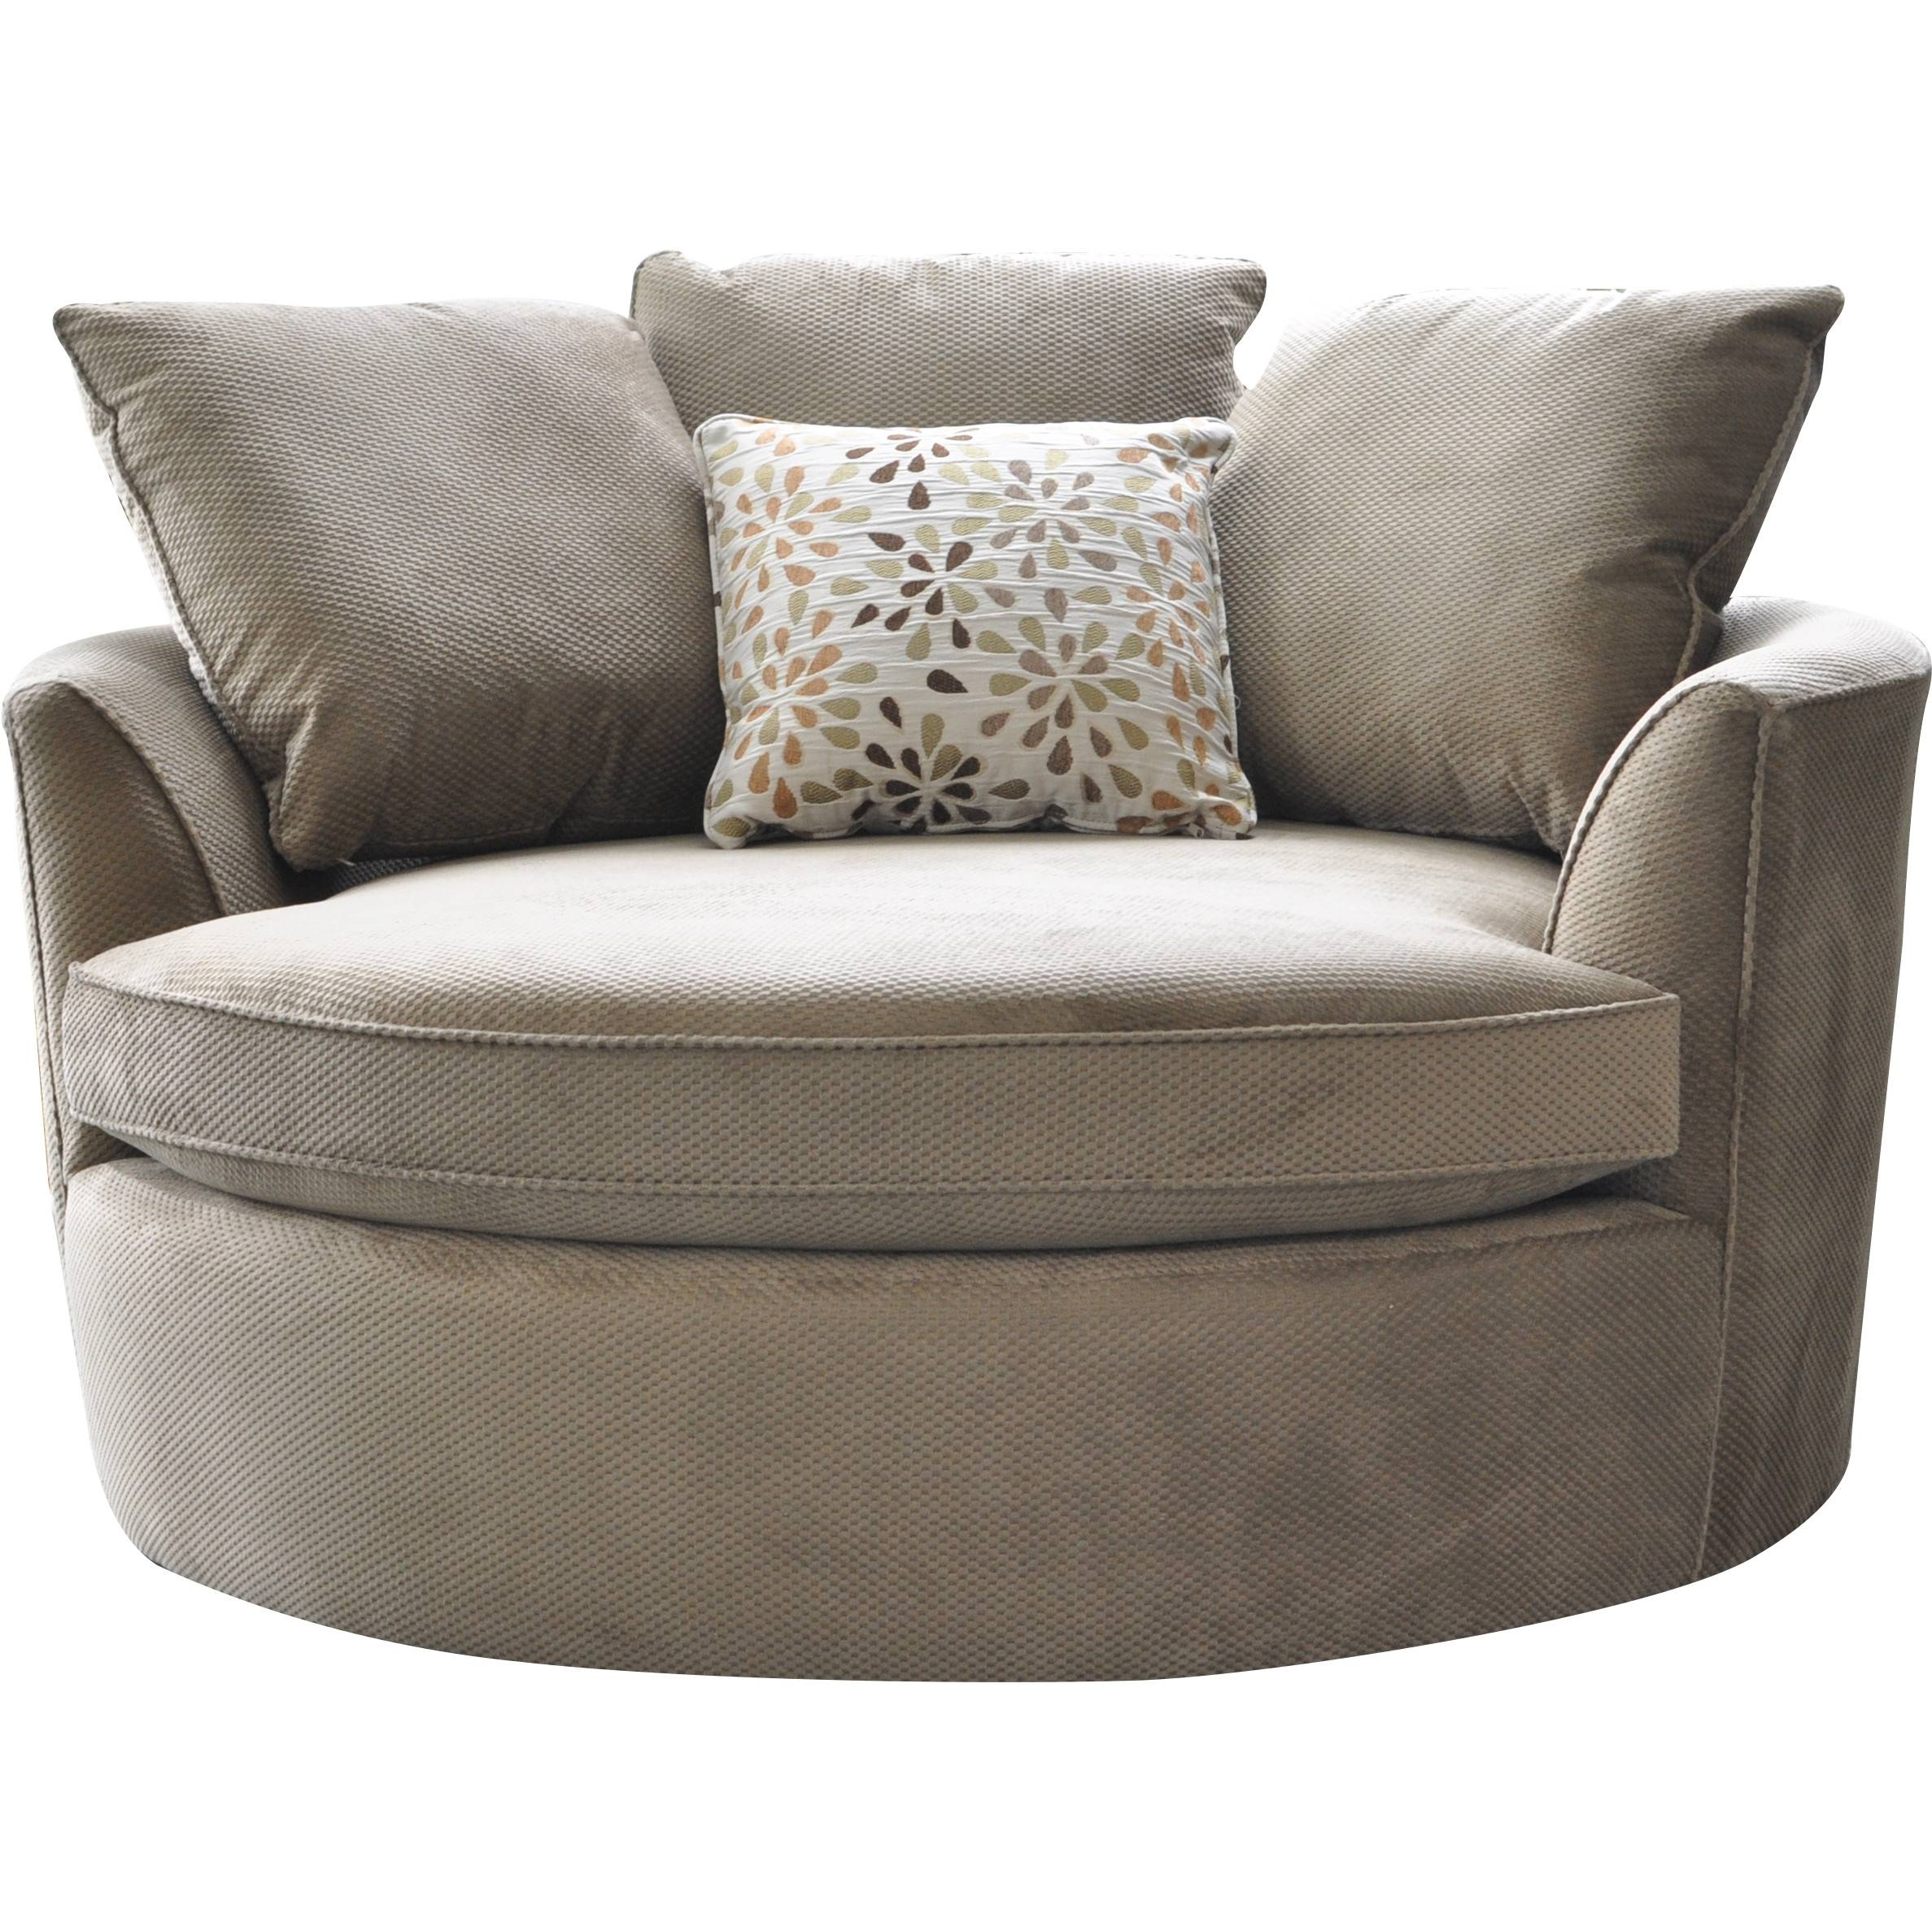 Cuddler Swivel Sofa Chair | Roselawnlutheran within Swivel Sofa Chairs (Image 14 of 30)